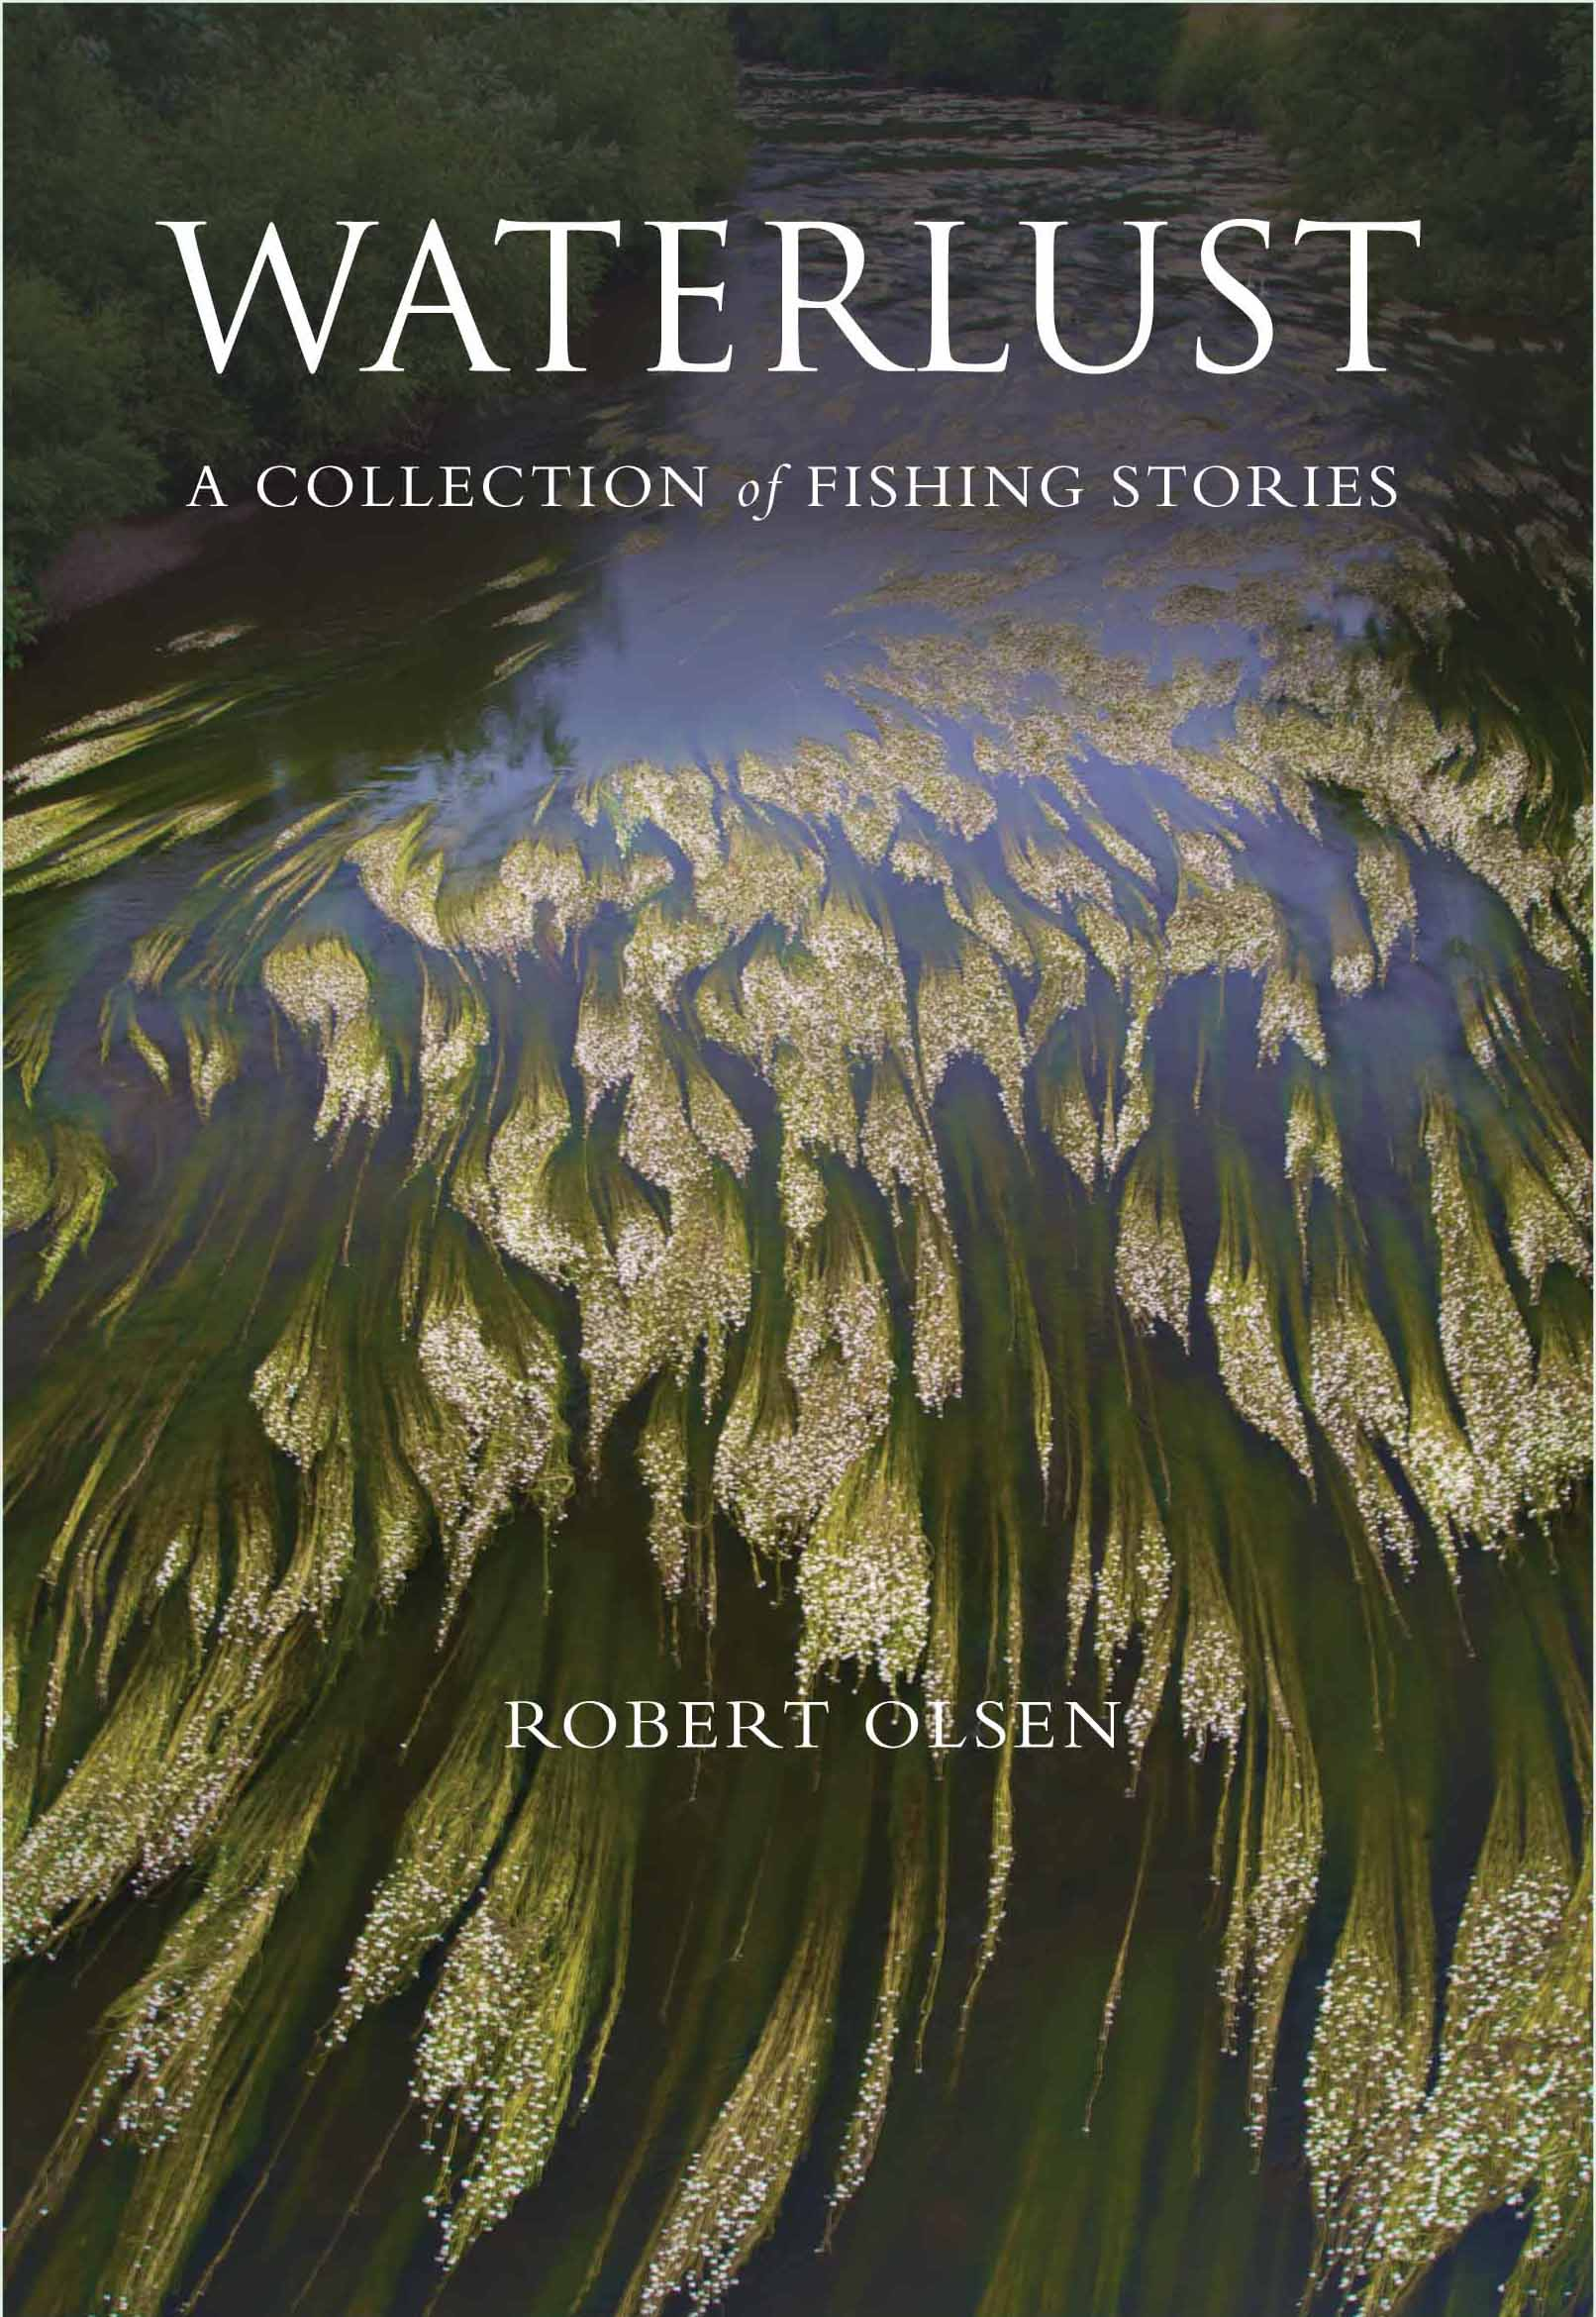 Waterlust is Rob Olsens latest book and includes stories about fishing on the Wye. A signed copy will be available to bid for in our upcoming auction